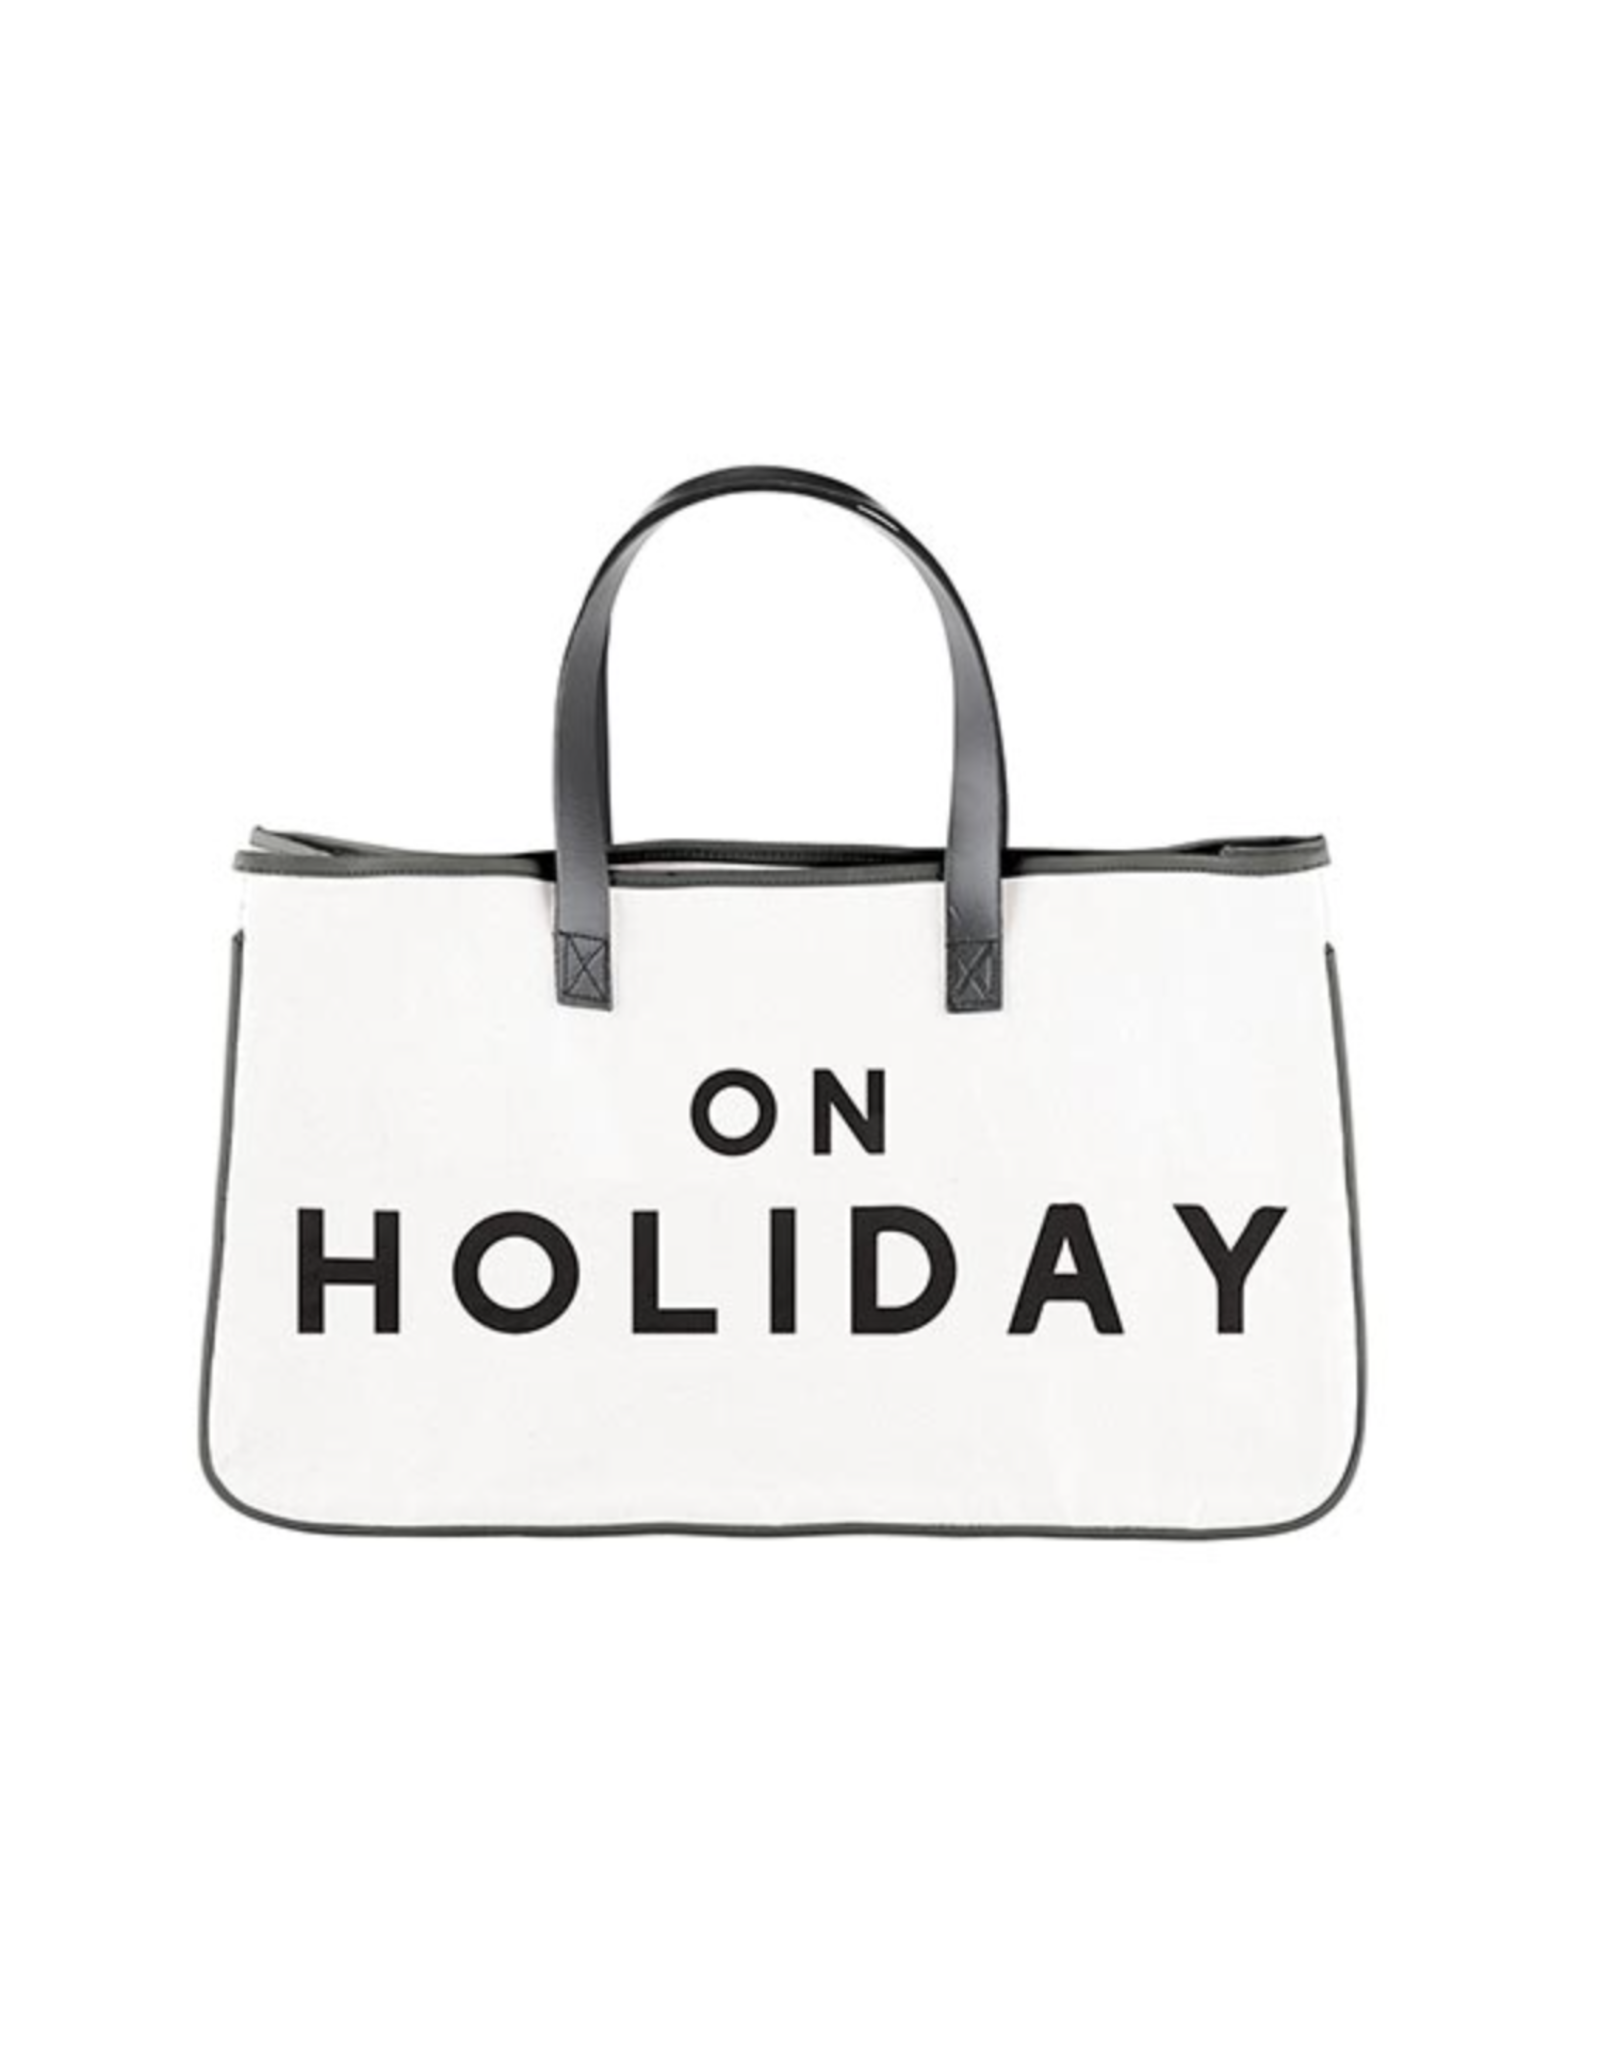 Creative Brands On Holiday Tote